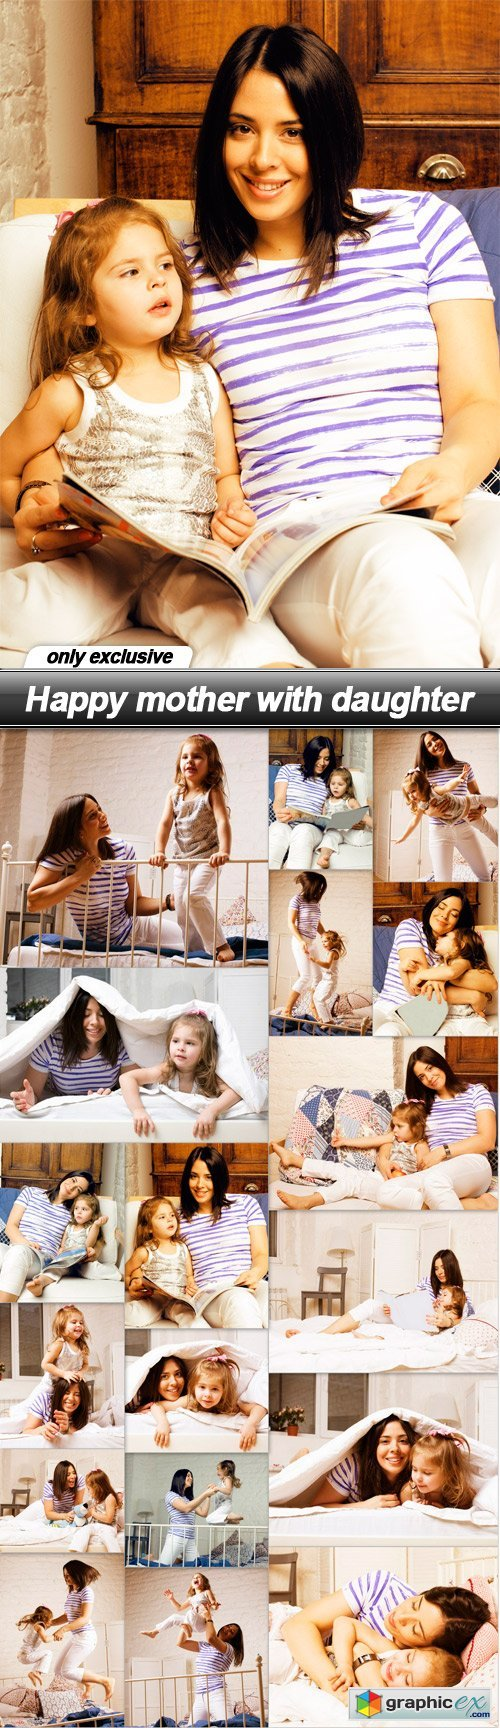 Happy mother with daughter - 18 UHQ JPEG